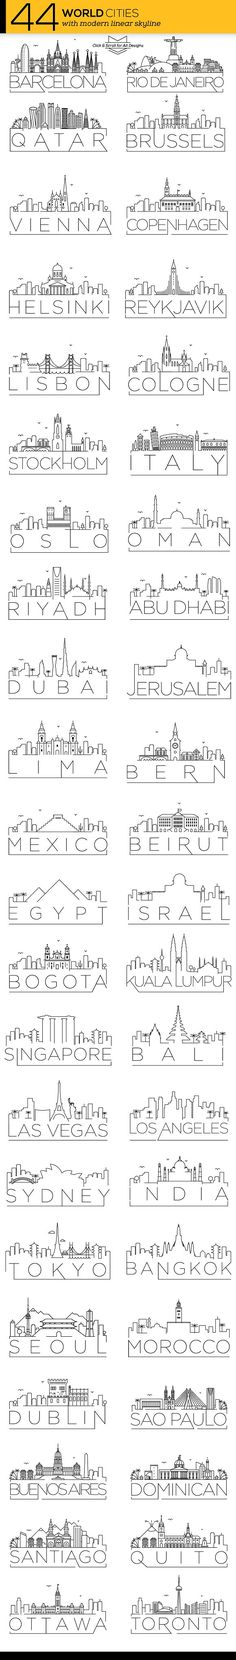 44 Different World Cities Skyline @creativework247